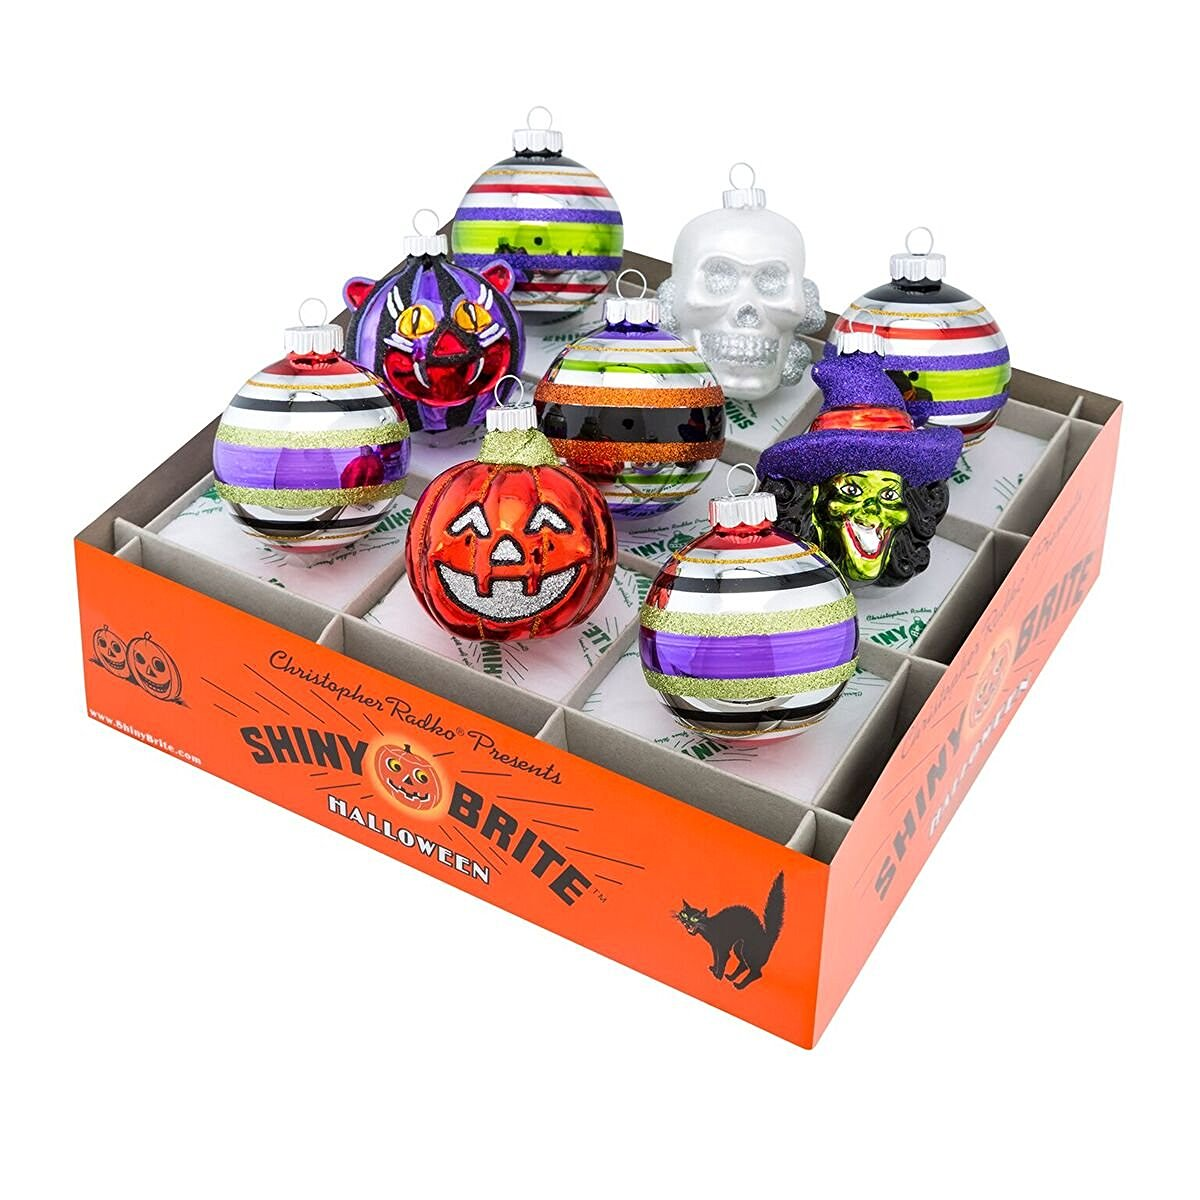 Radko Shiny Brite Halloween Ornaments